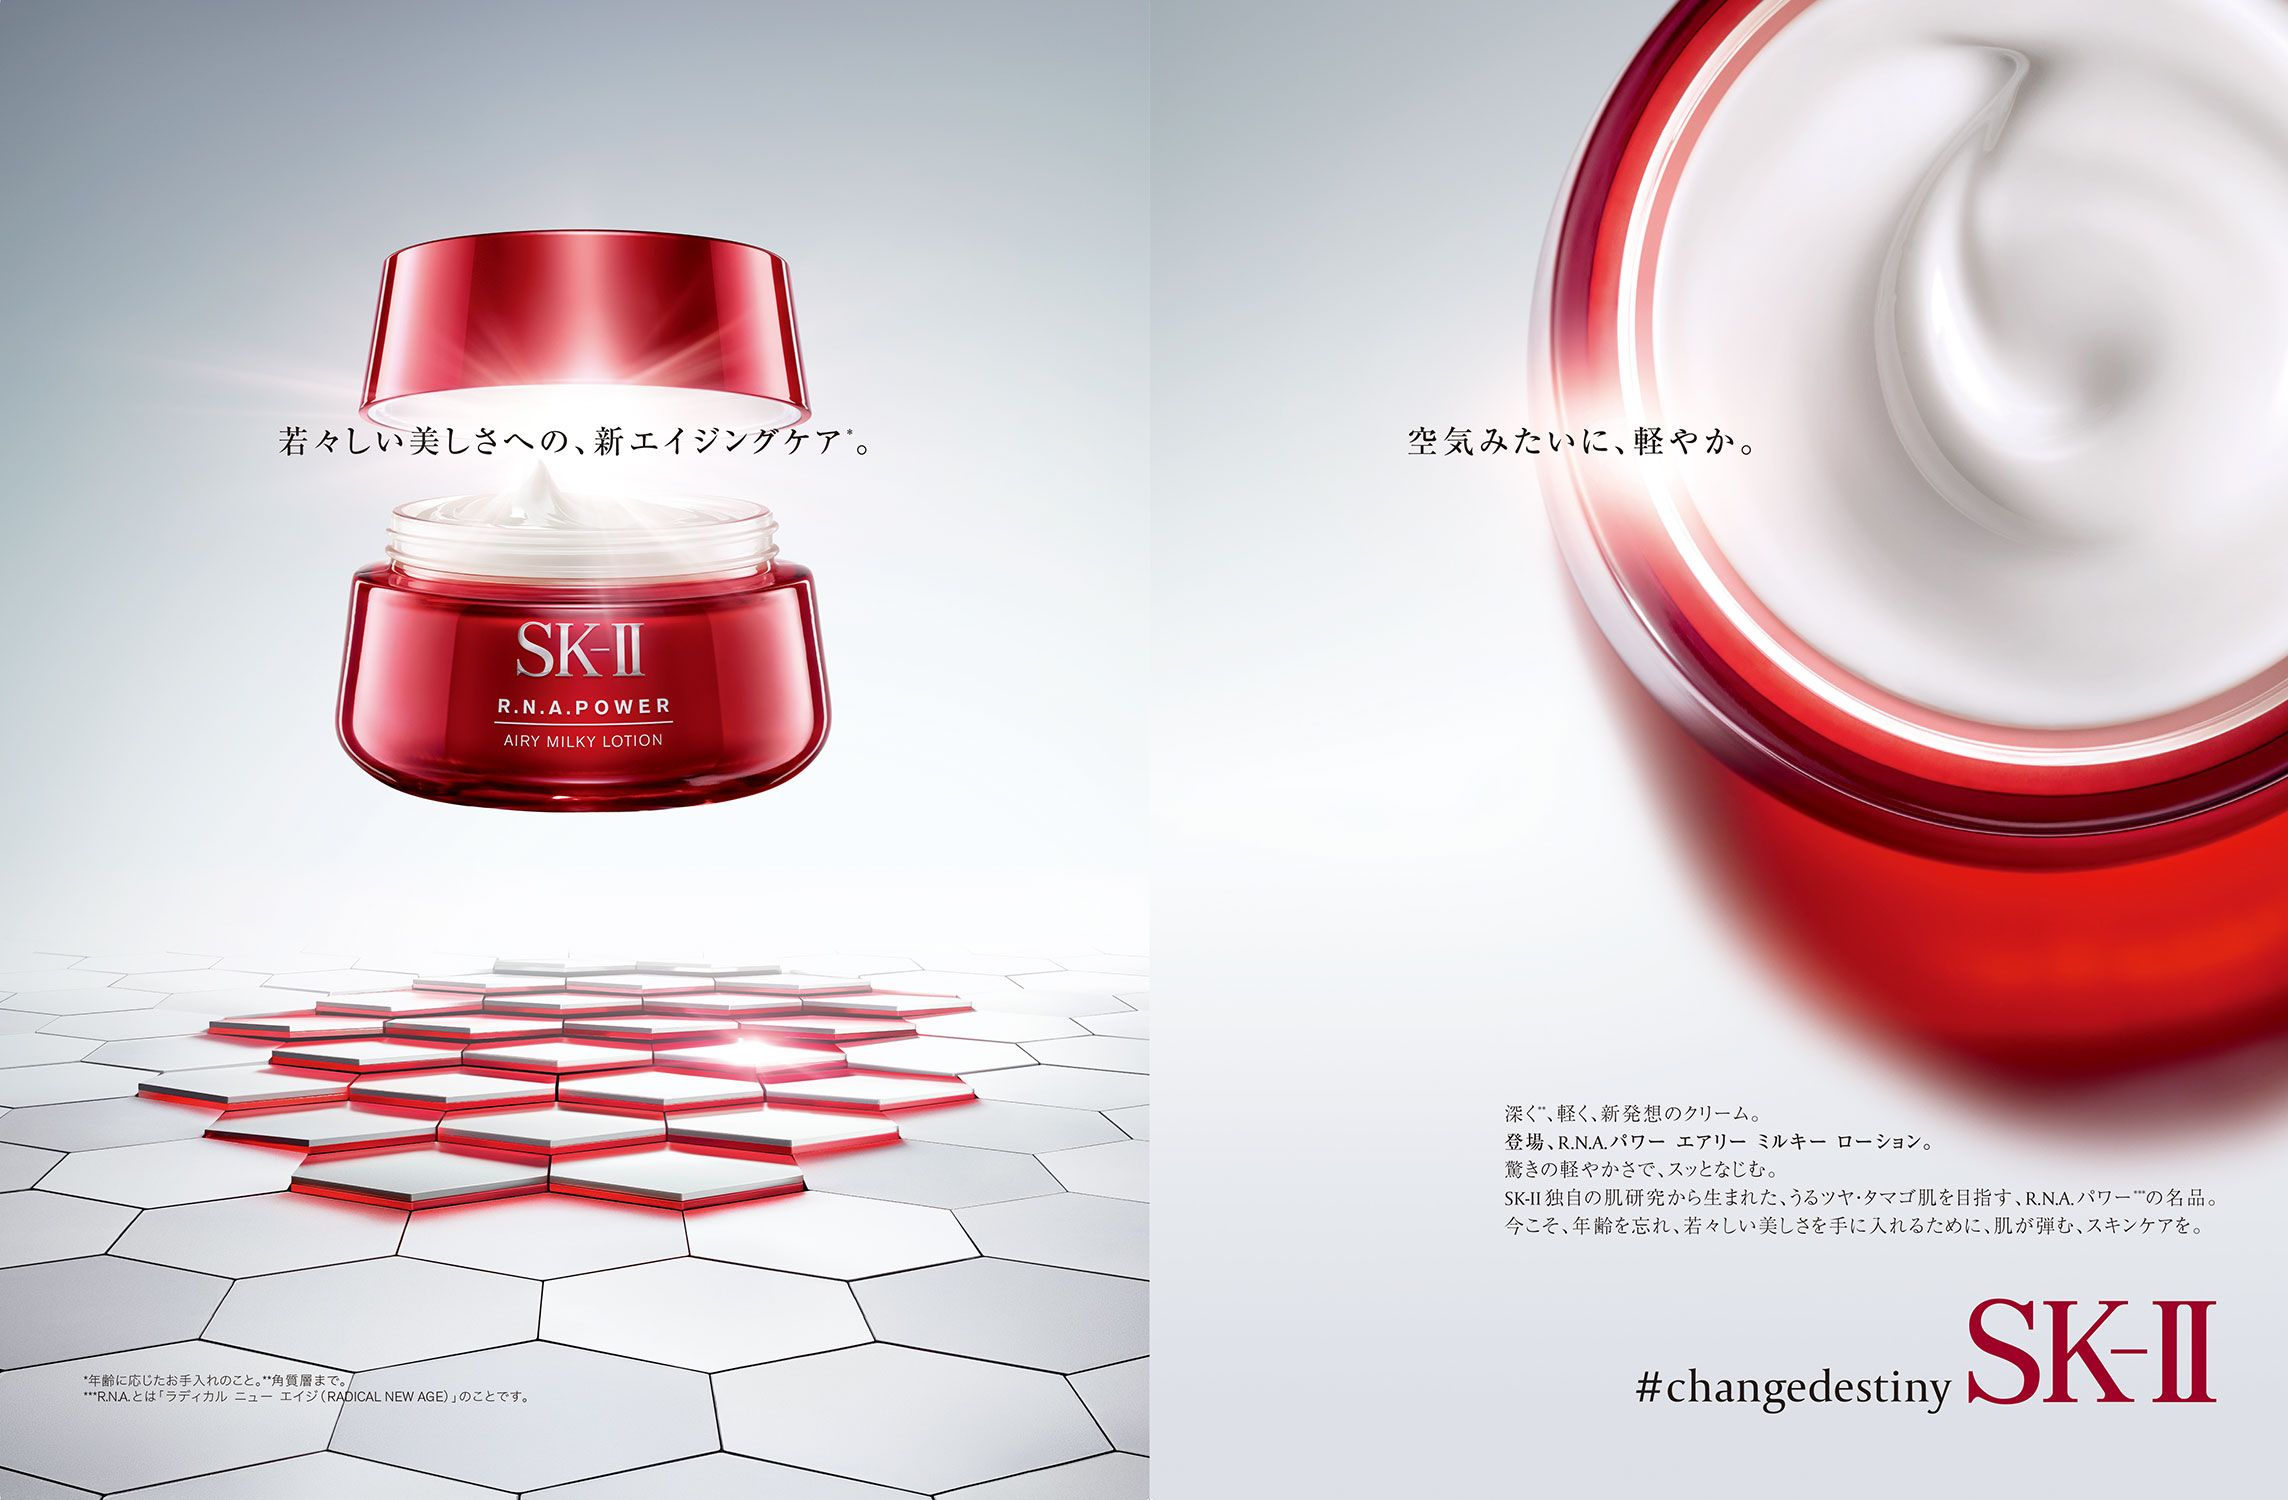 Photo of [Advertising] SKII Airy Milky Lotion — Nori Inoguchi